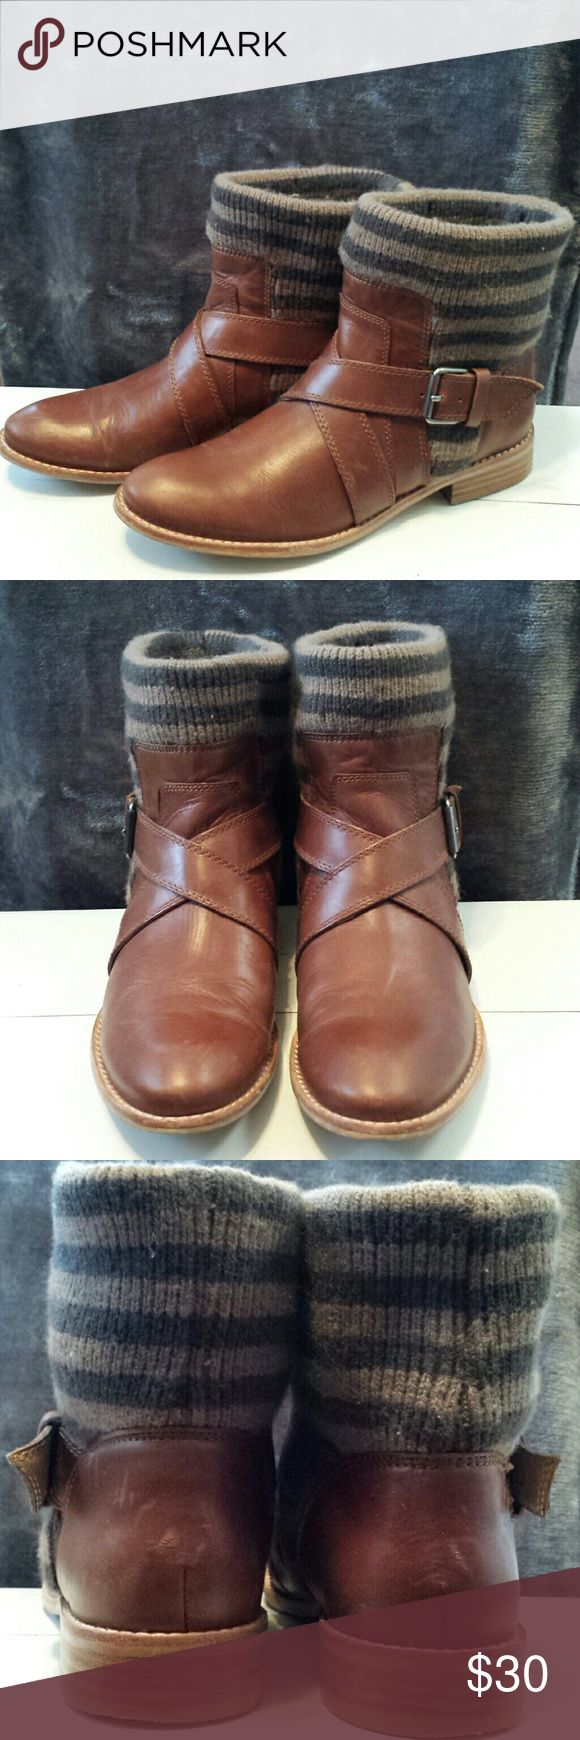 Splendid ankle boots Tan leather with straps Splendid Shoes Ankle Boots & Booties